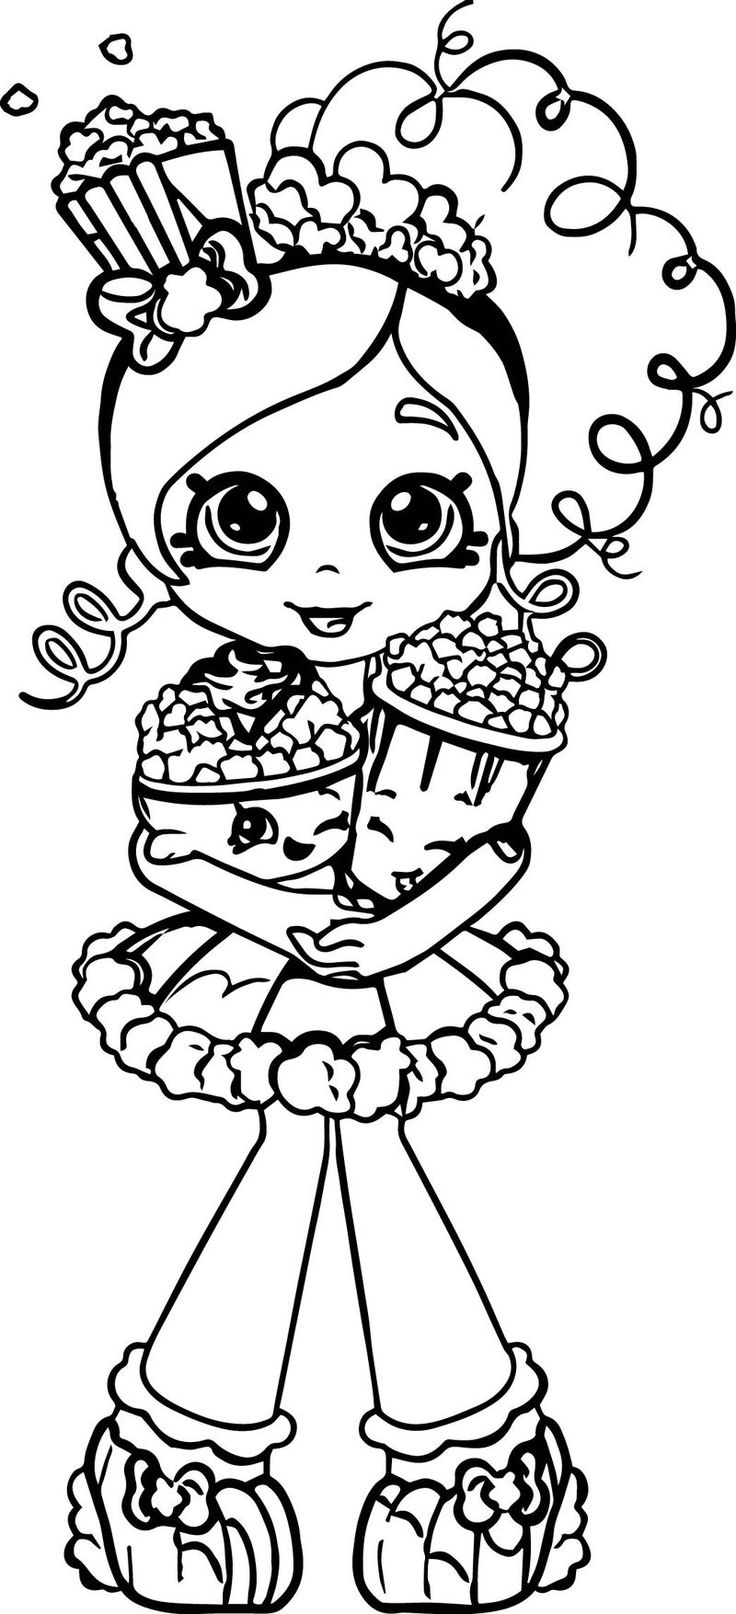 Popcorn Shopkins Girl Coloring Page. Also see the category